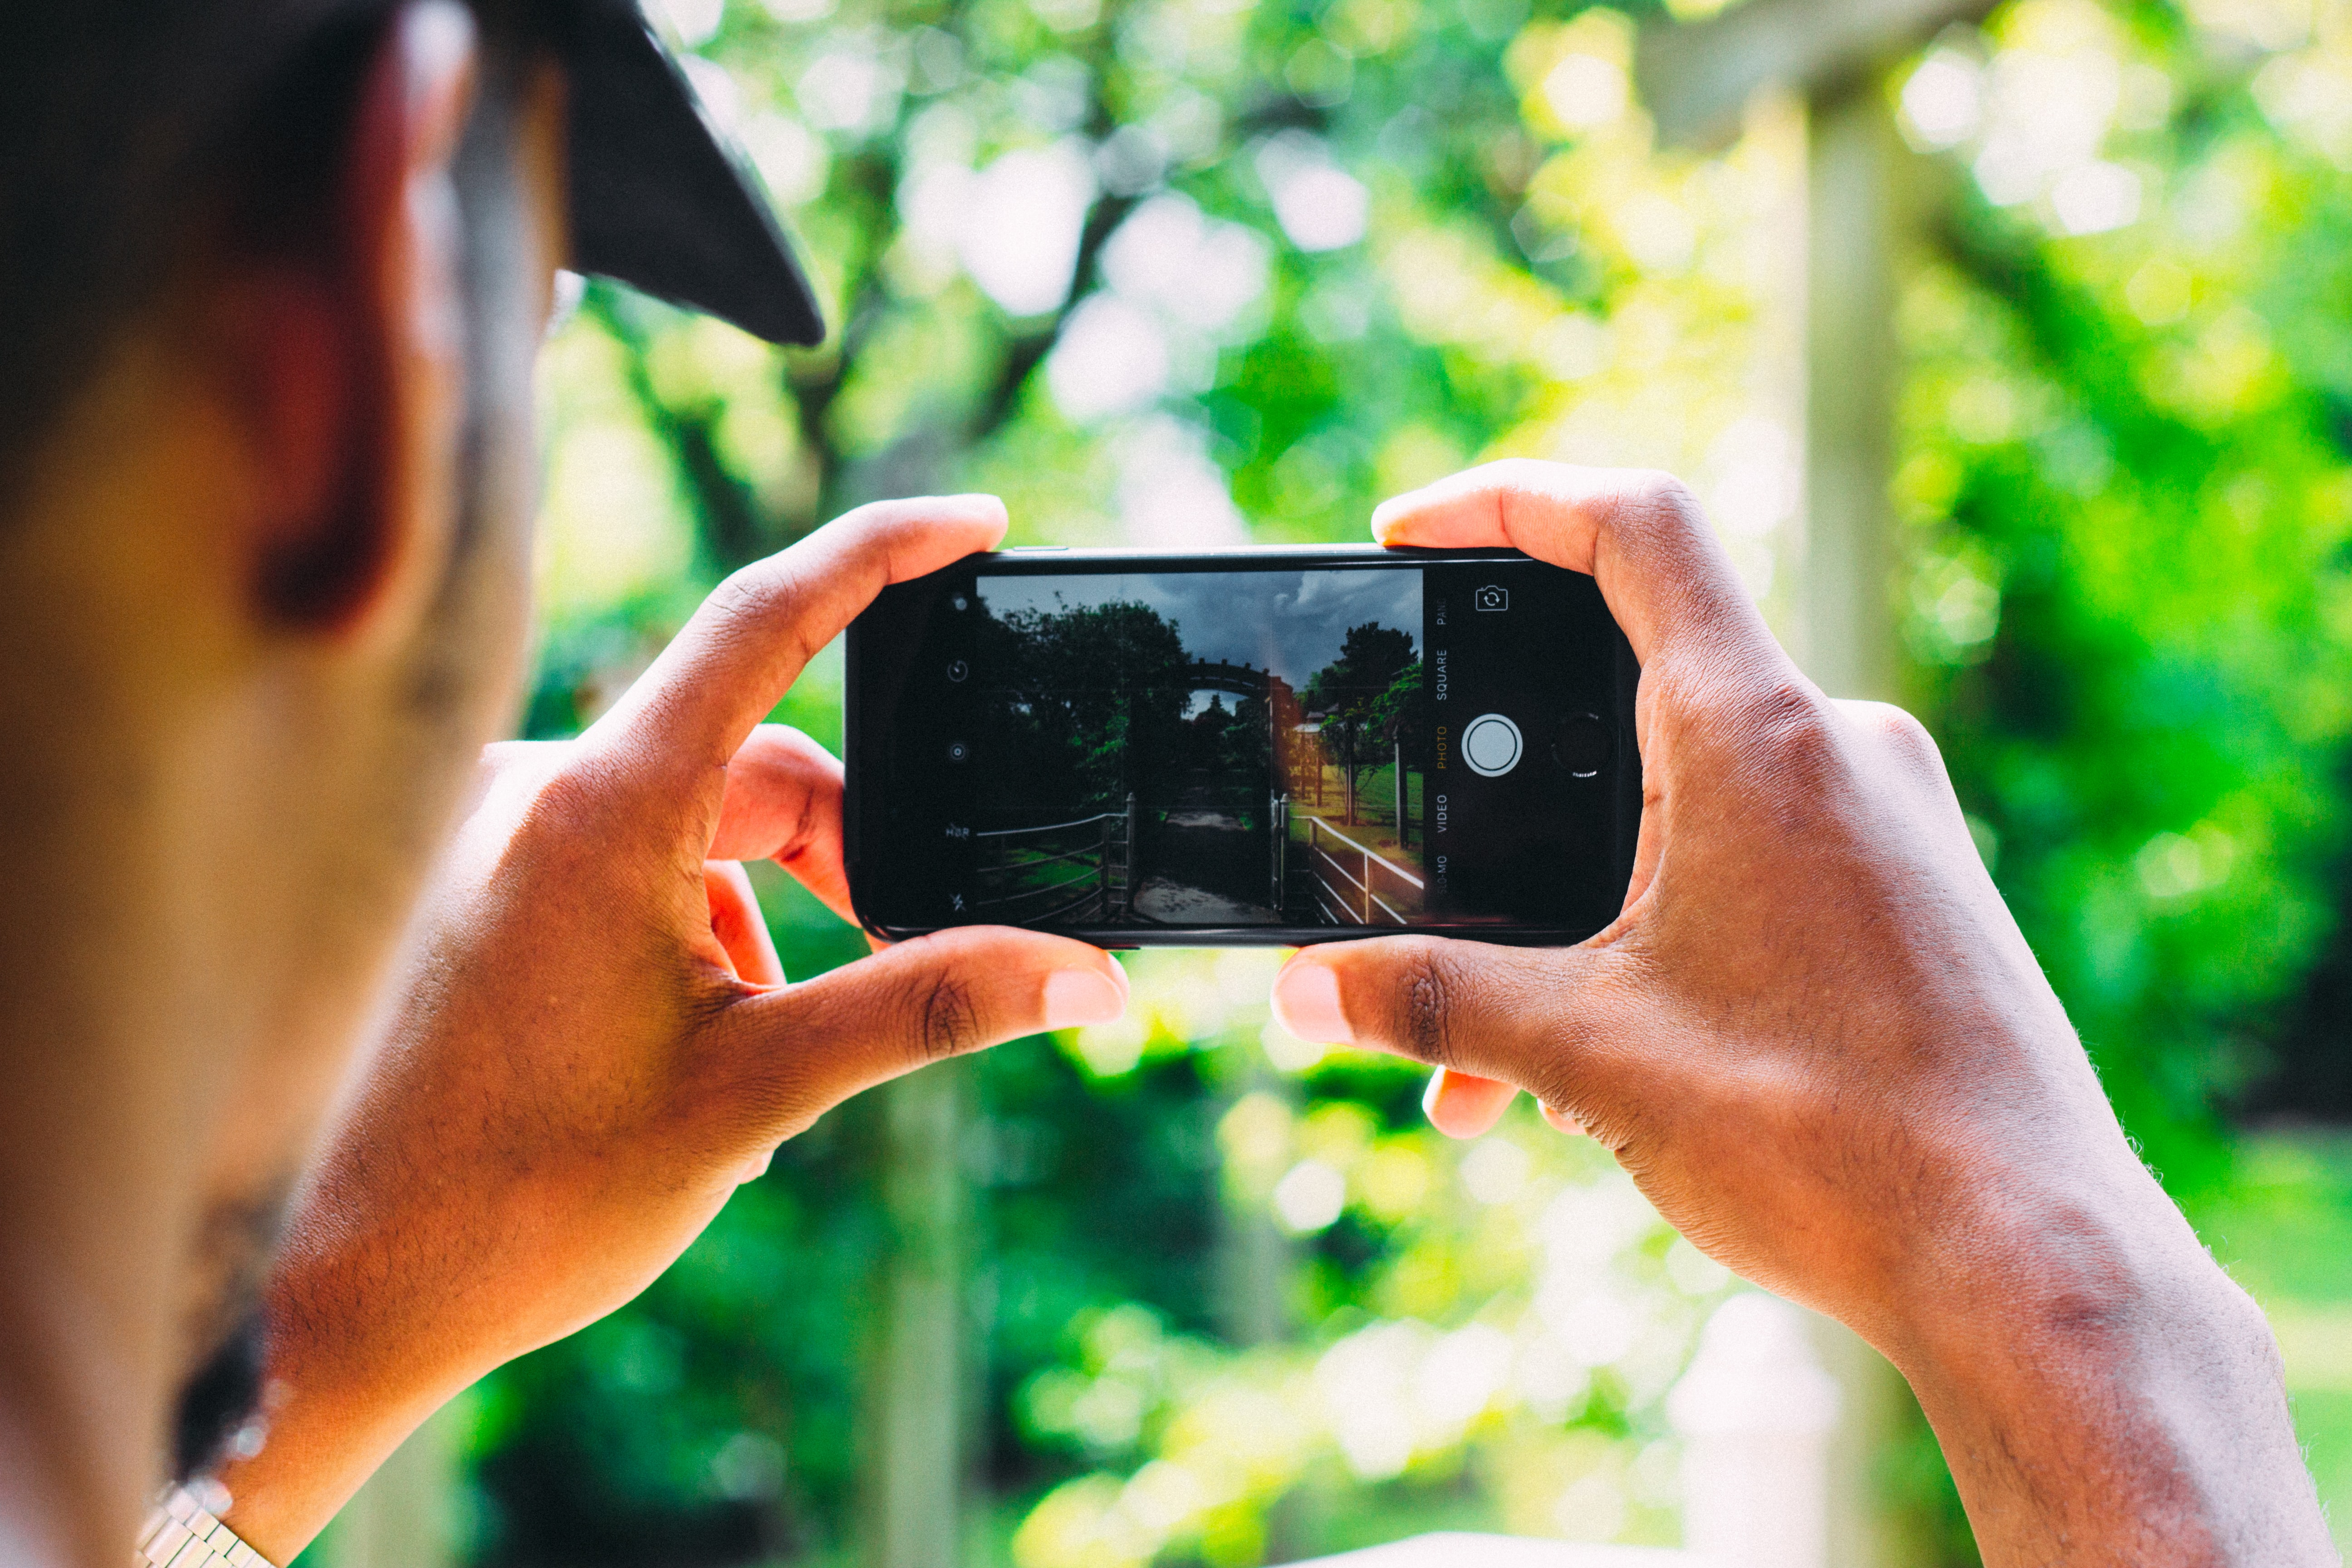 A person holds an iphone in front of him, taking a picture of the woods